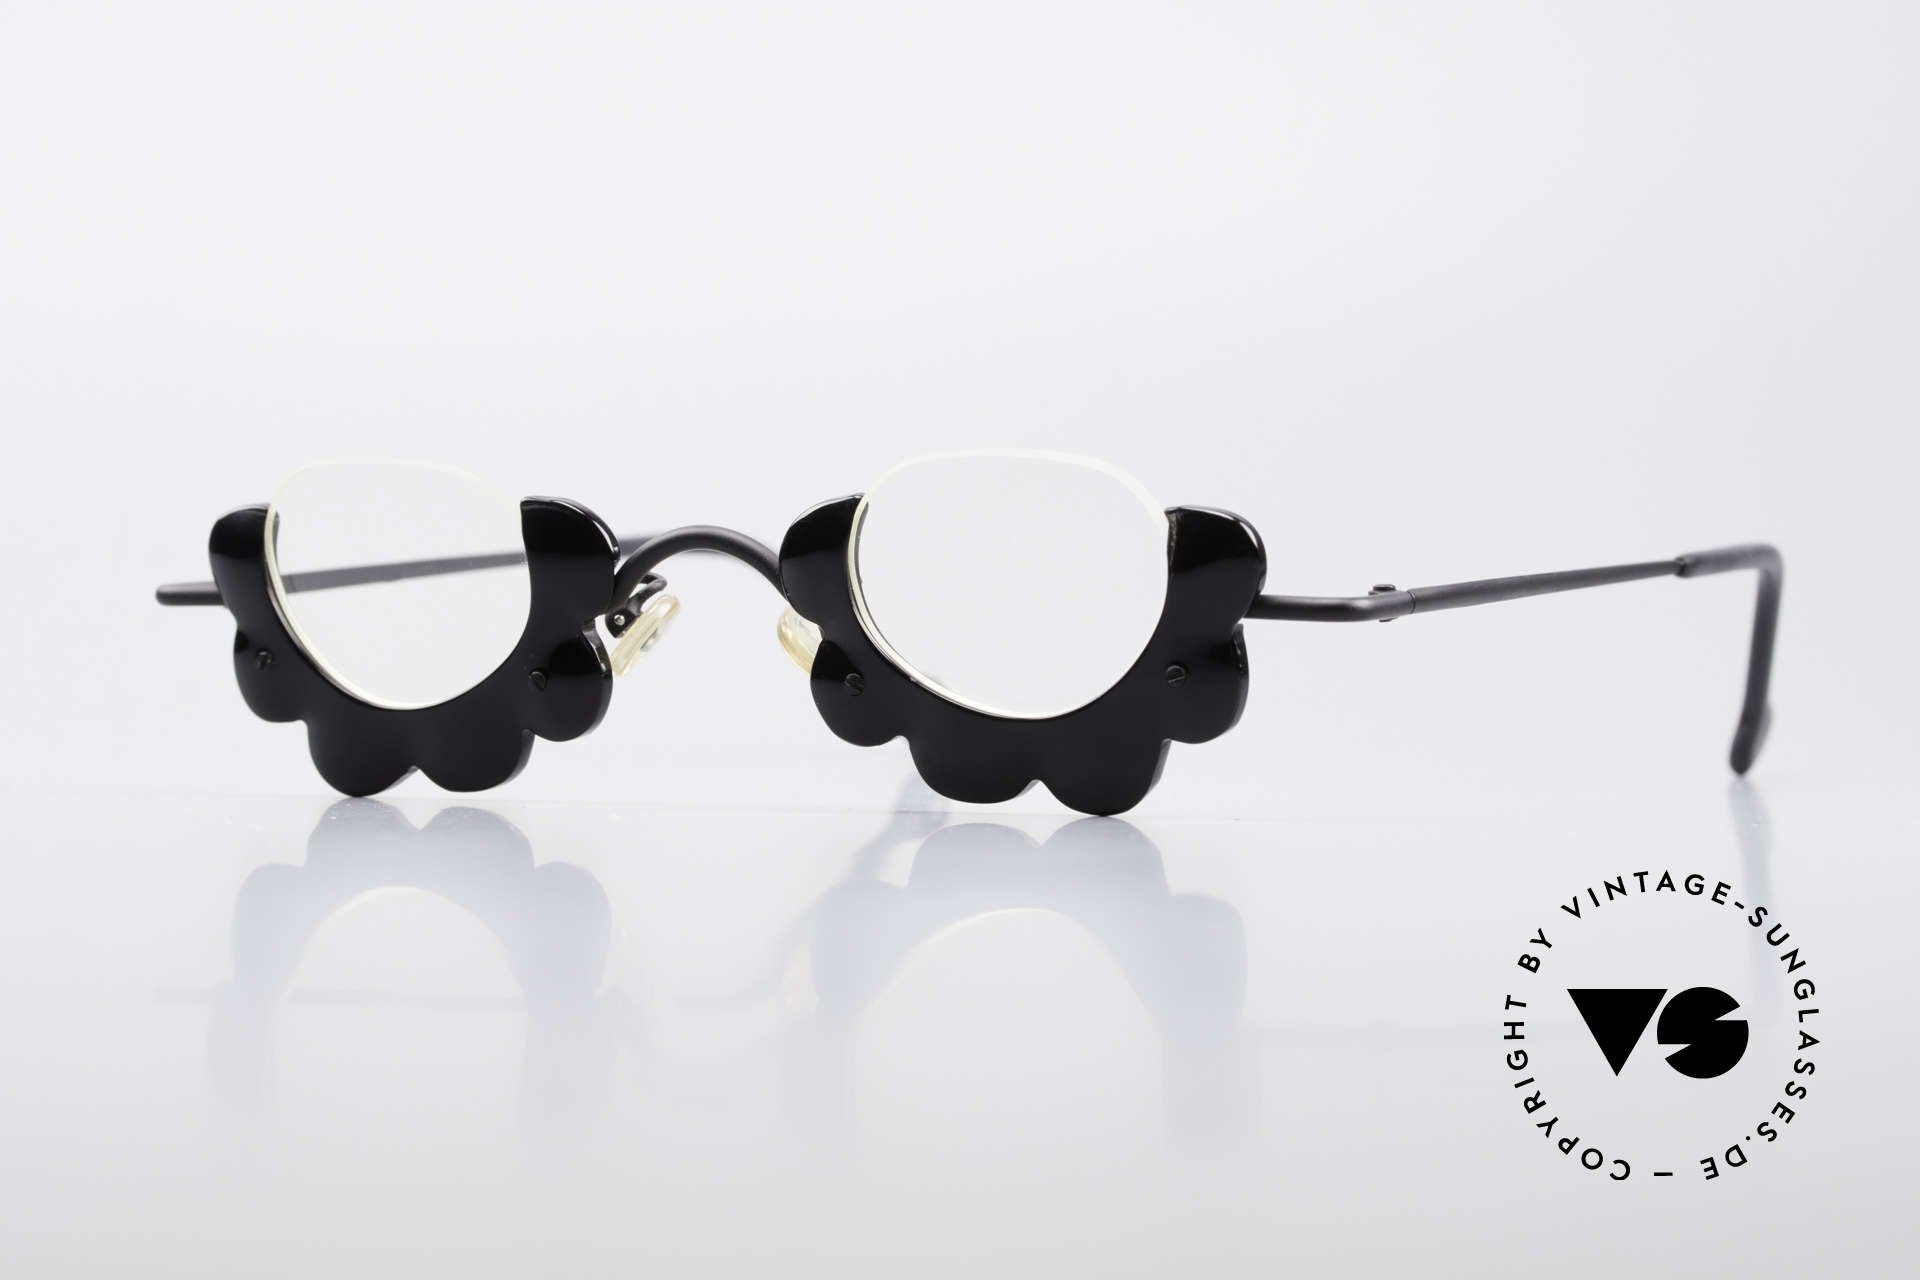 L.A. Eyeworks BUMBLE 412 Extraordinary Reading Glasses, enchanting vintage ladies' glasses by L.A. EYEWORKS, Made for Women